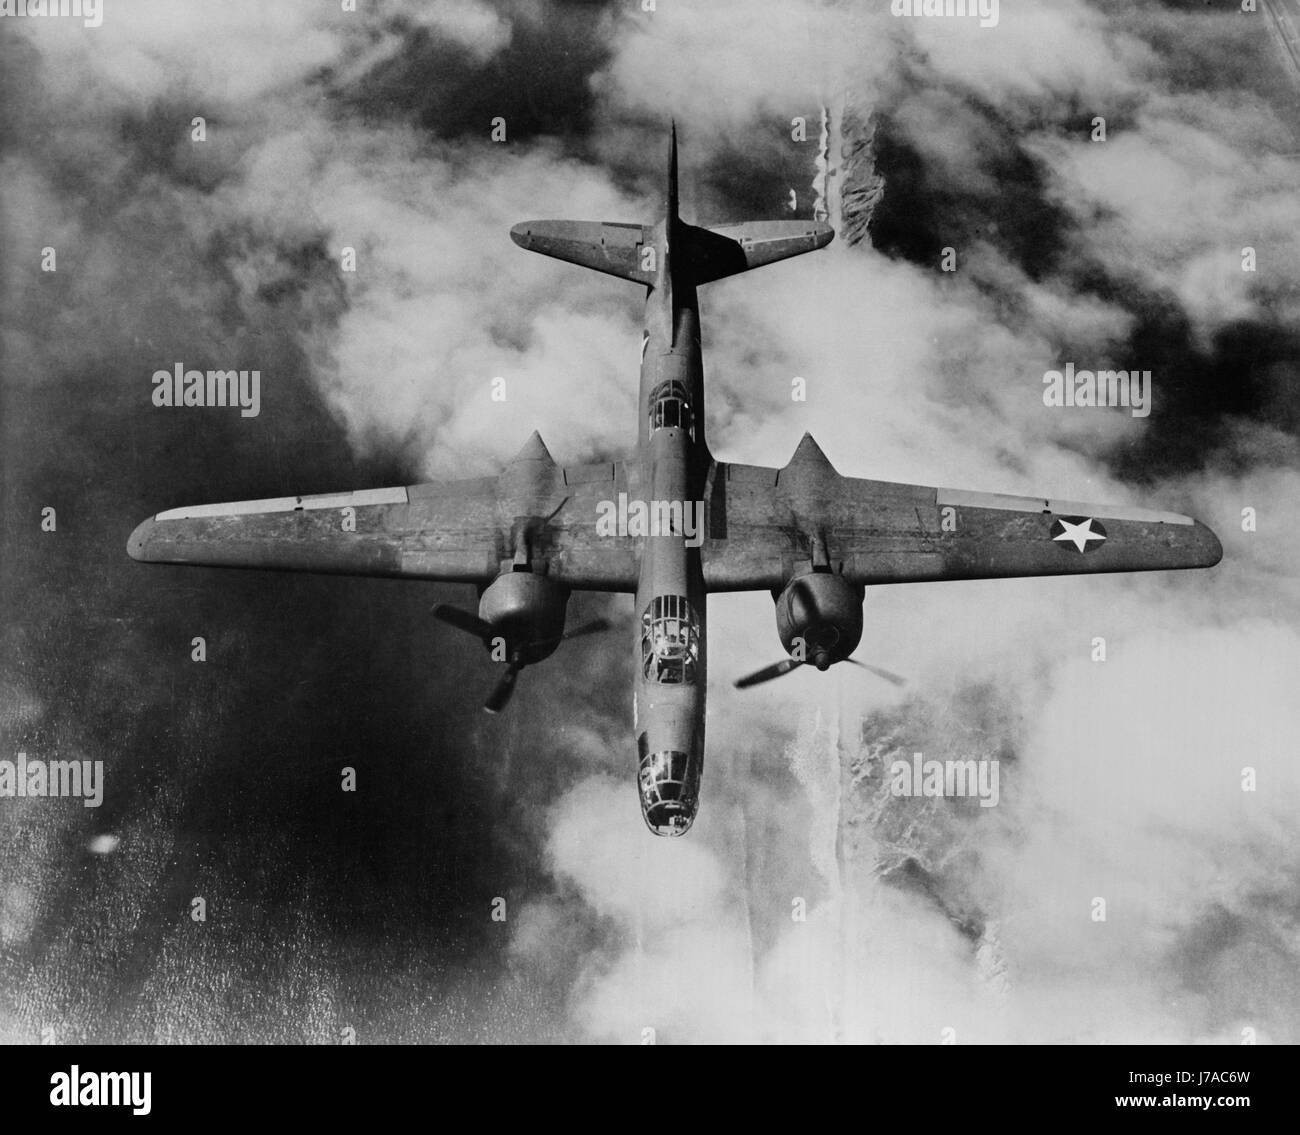 A U.S. Army Air Forces A-20 Havoc light bomber during World War II. - Stock Image